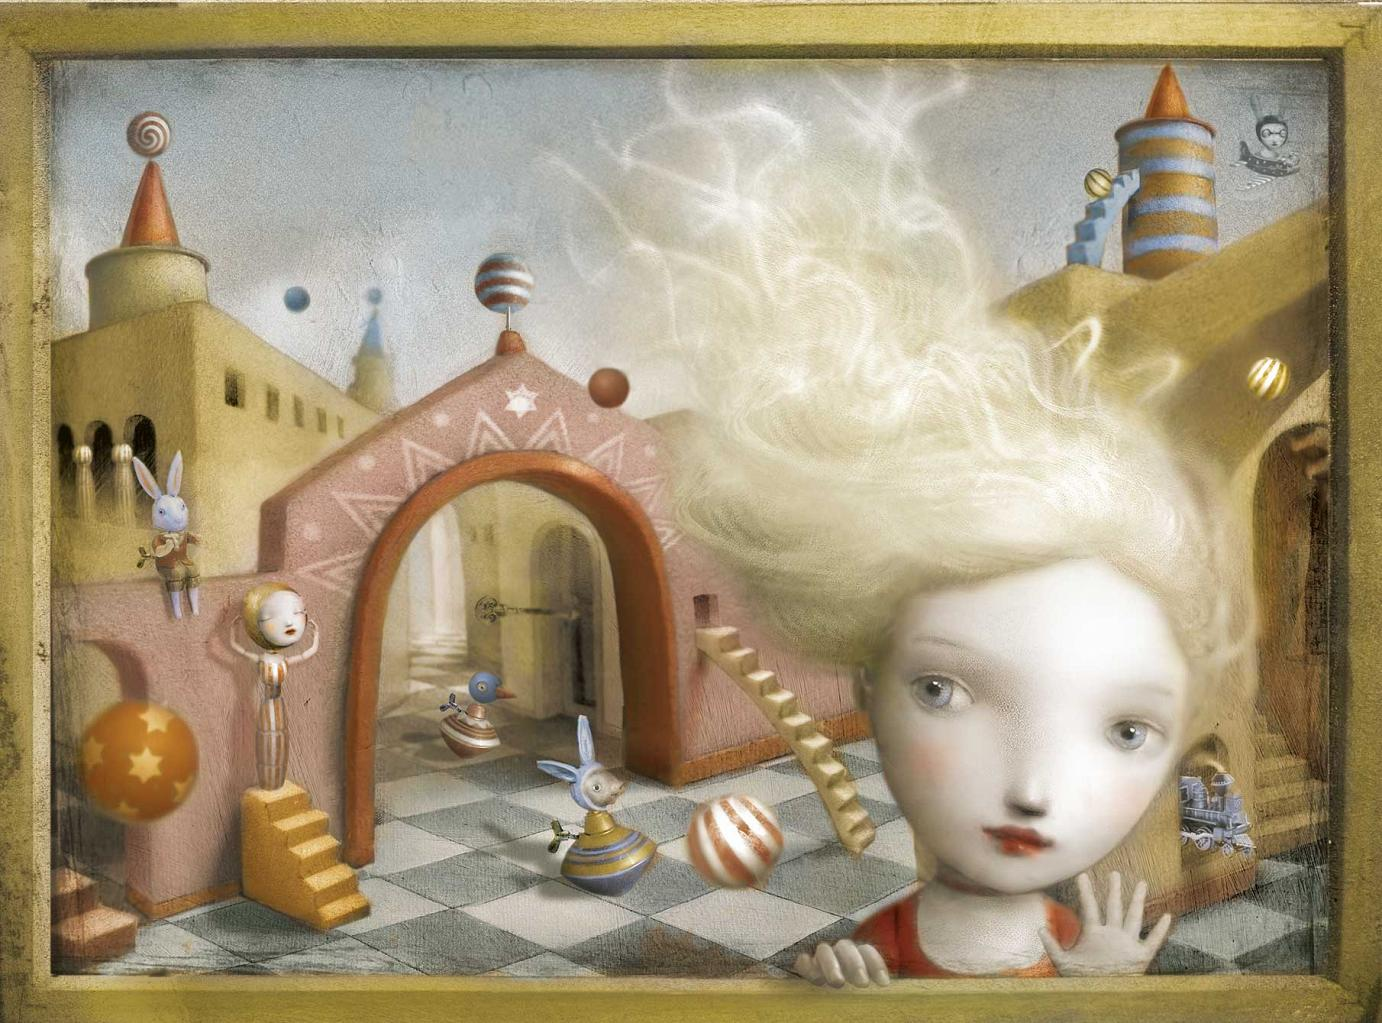 »Last Hello« · 2006 · Mischtechnik und digital · 41 cm x 31 cm · Illustartion aus dem Buch »The Girl in the Castle inside the Museum« von Nicoletta Ceccoli